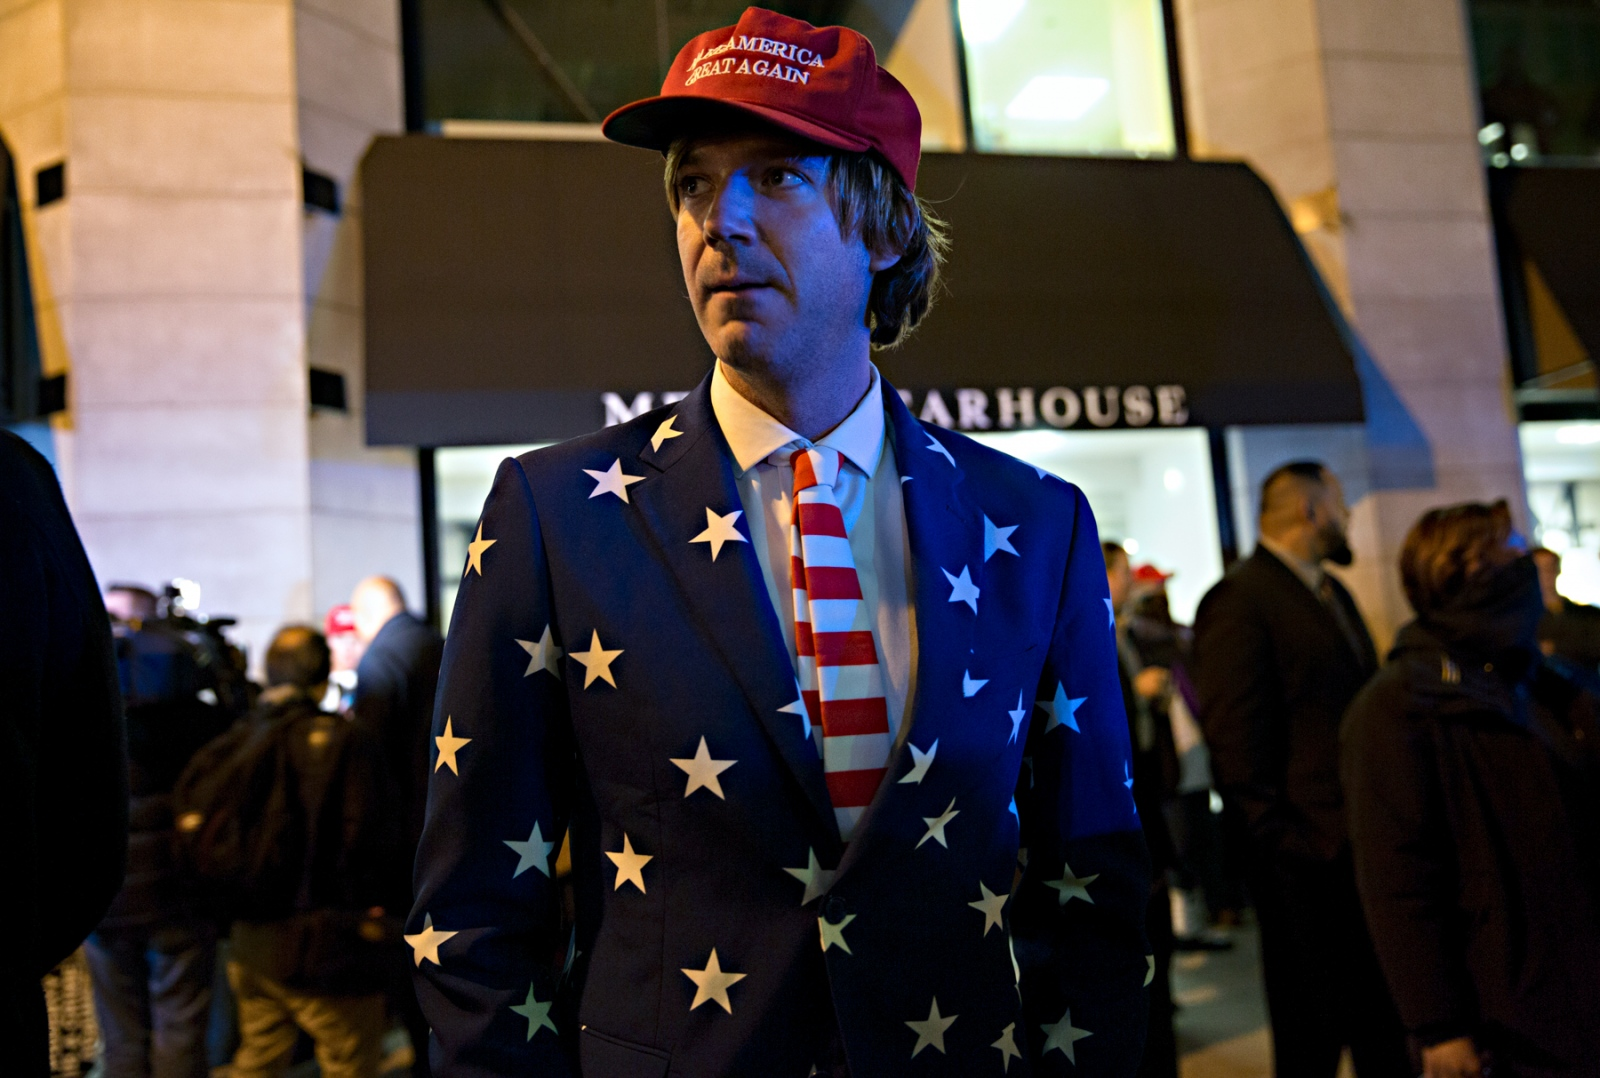 January 19, 2017 - Washington, DC, United States: A supporter of Donald Trump risks his safety and negotiates his way past protestors to a party held in honor of the new President.